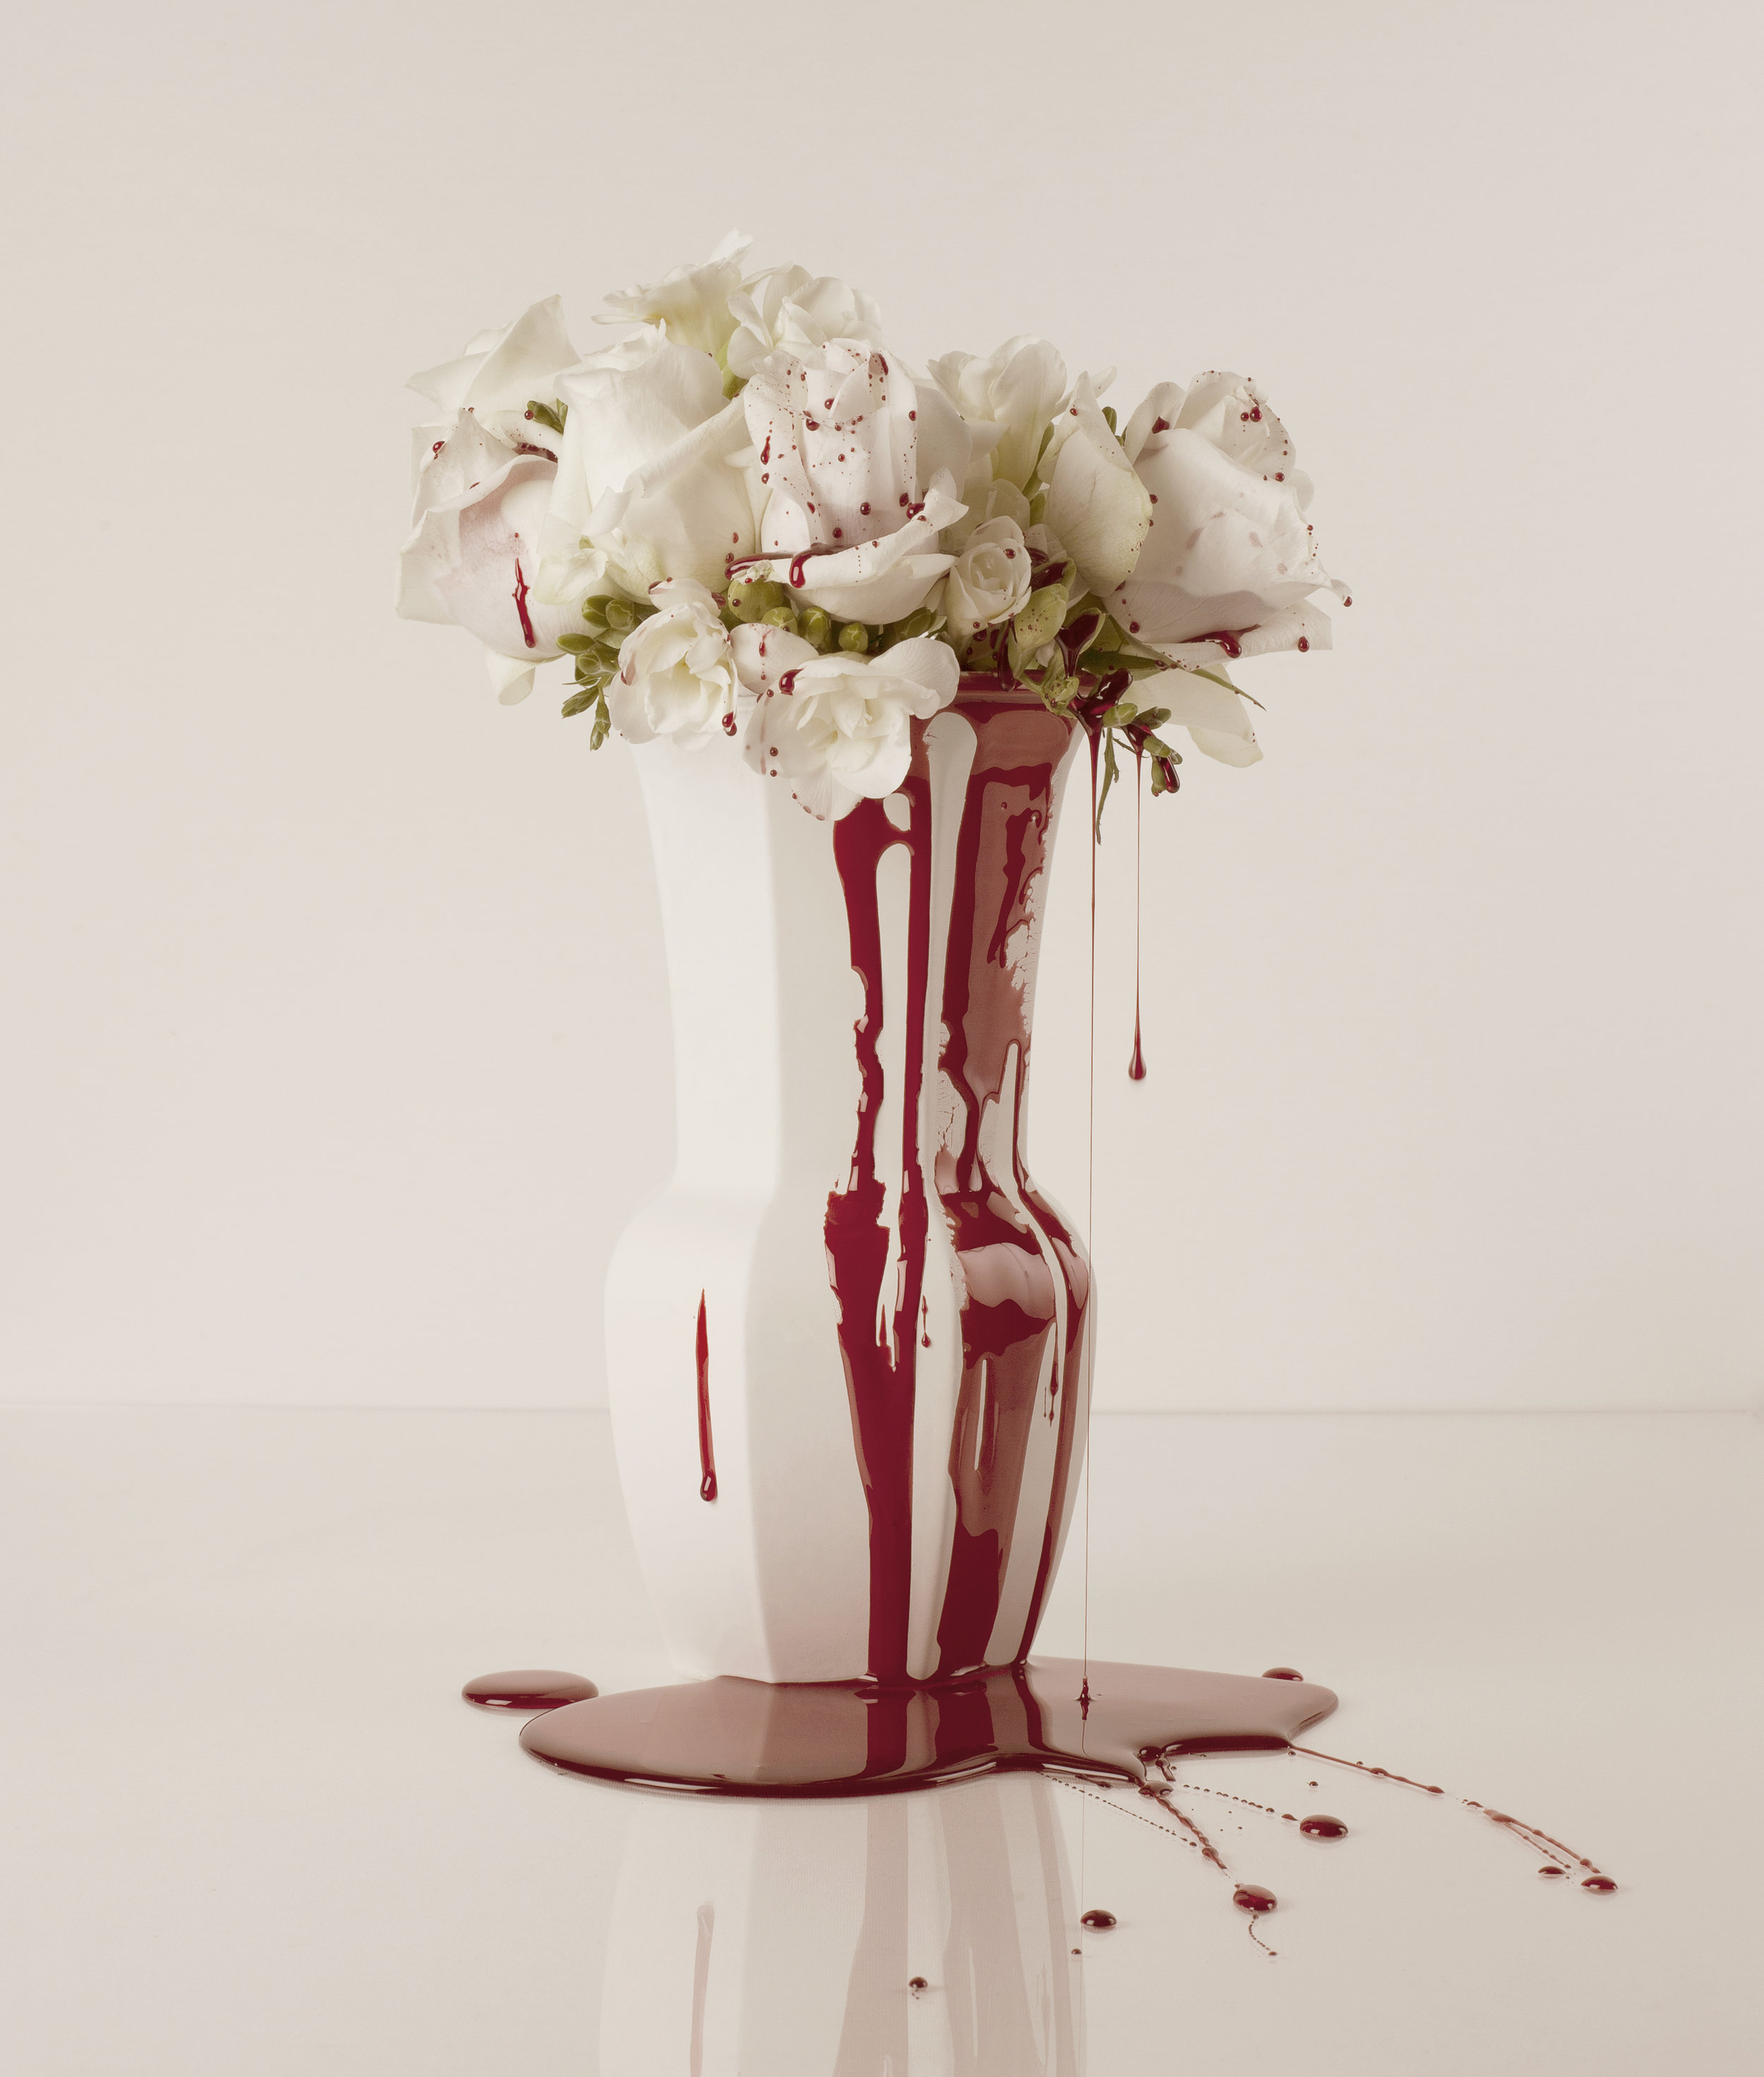 Blood & Roses (5) - colour photograph, edition of 5 + AP